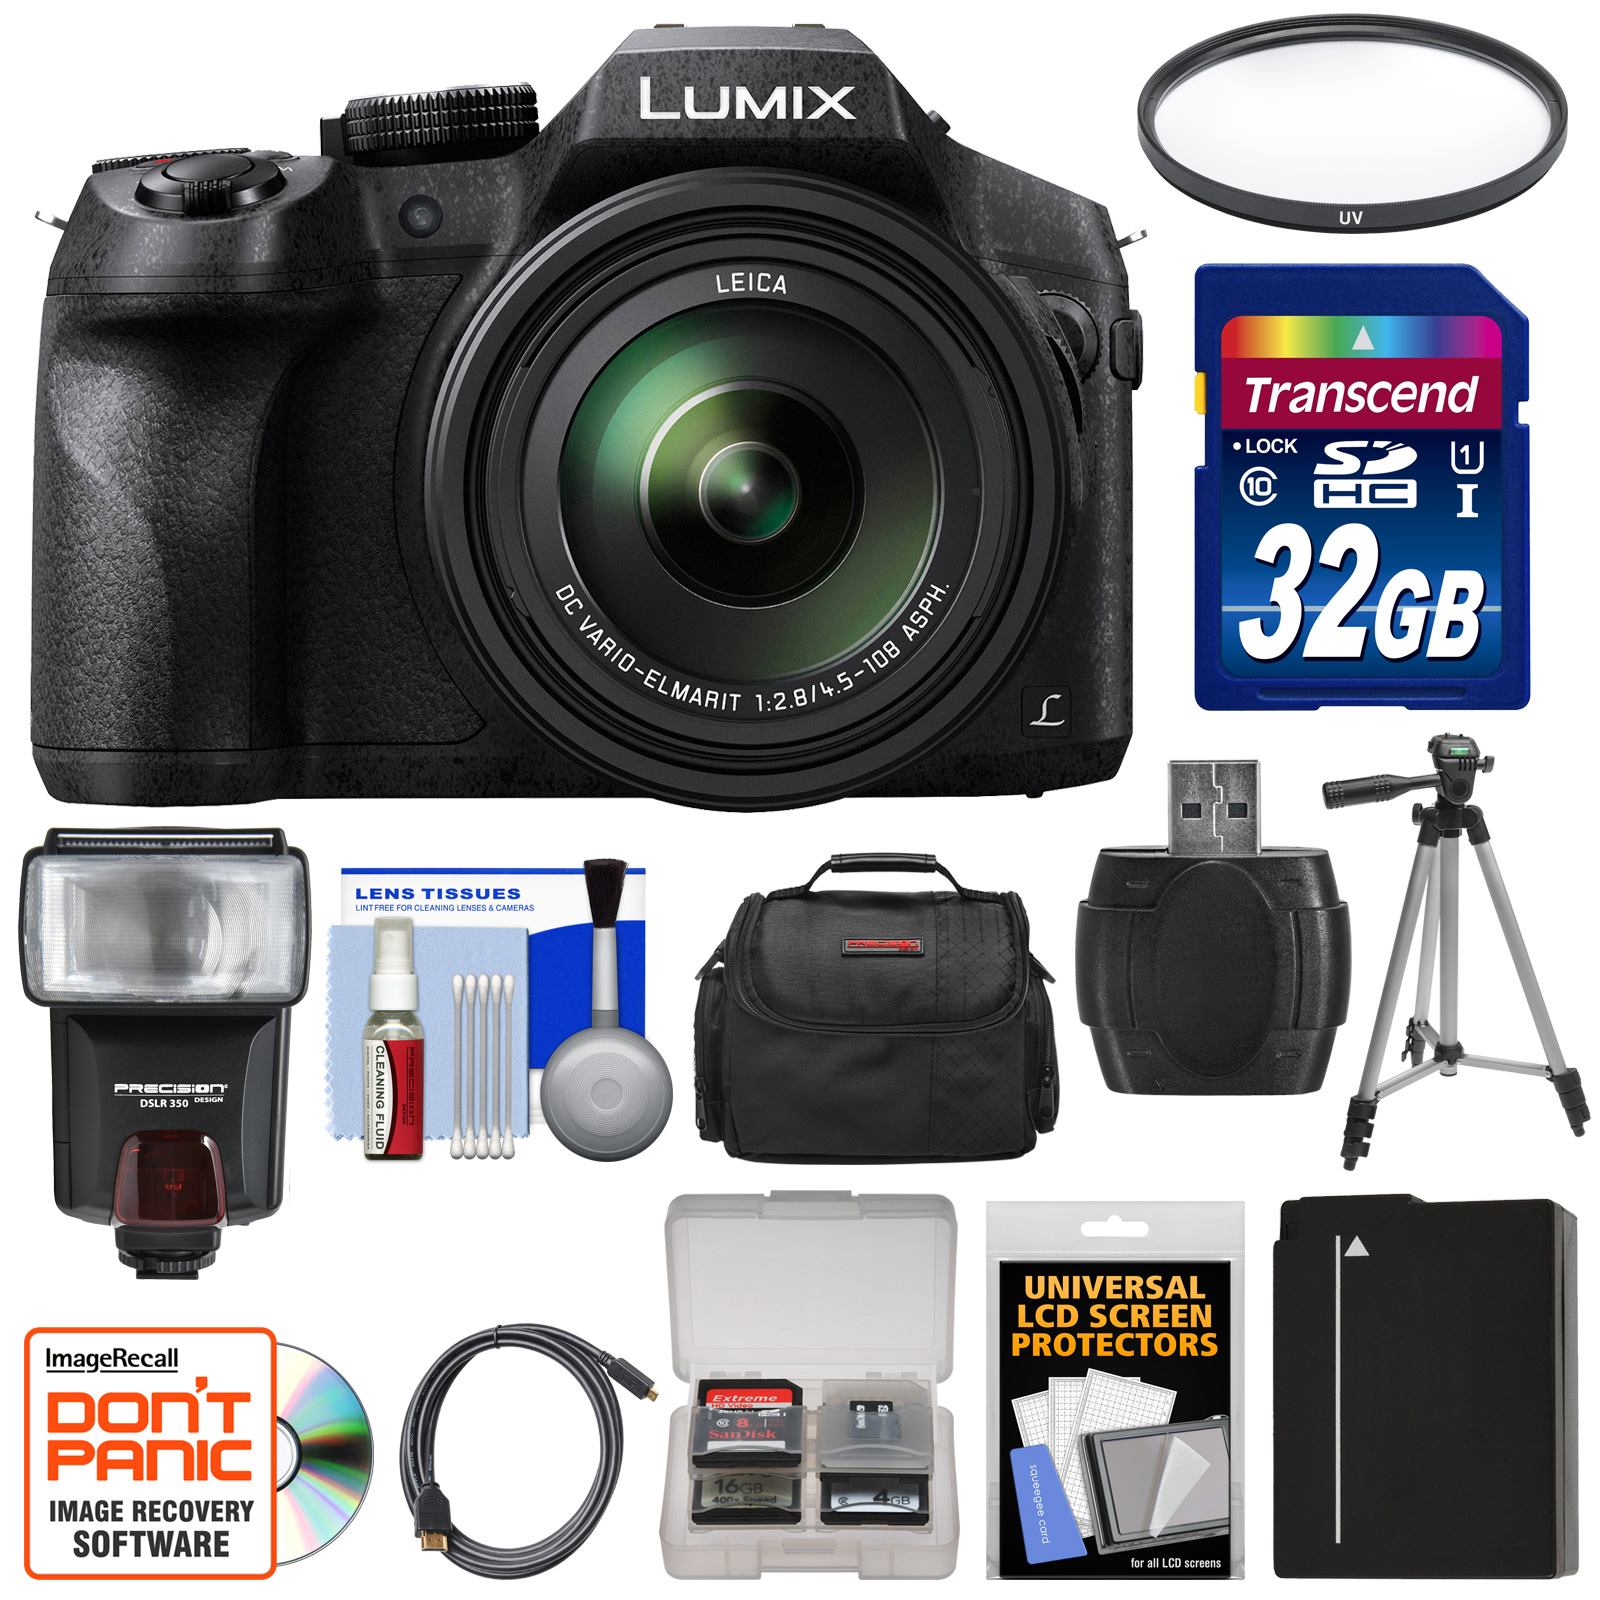 Panasonic Lumix DMC-FZ300 4K Wi-Fi Digital Camera with 32GB Card + Battery + Case + Tripod + Flash + Filter + Kit